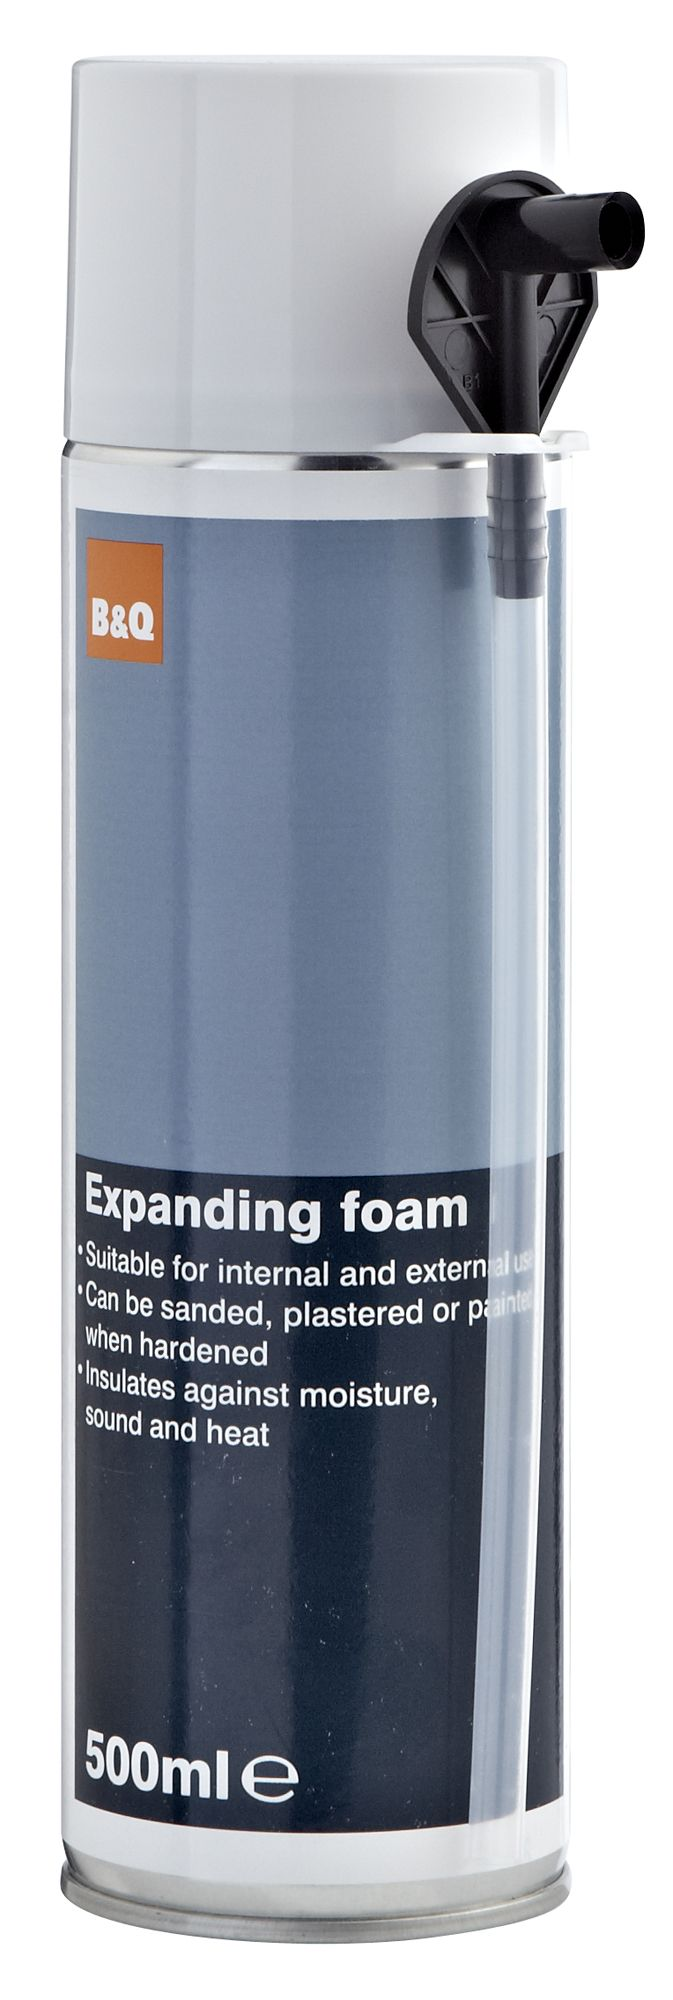 B&Q Champagne Expanding Foam 500 ml | Departments | DIY at B&Q